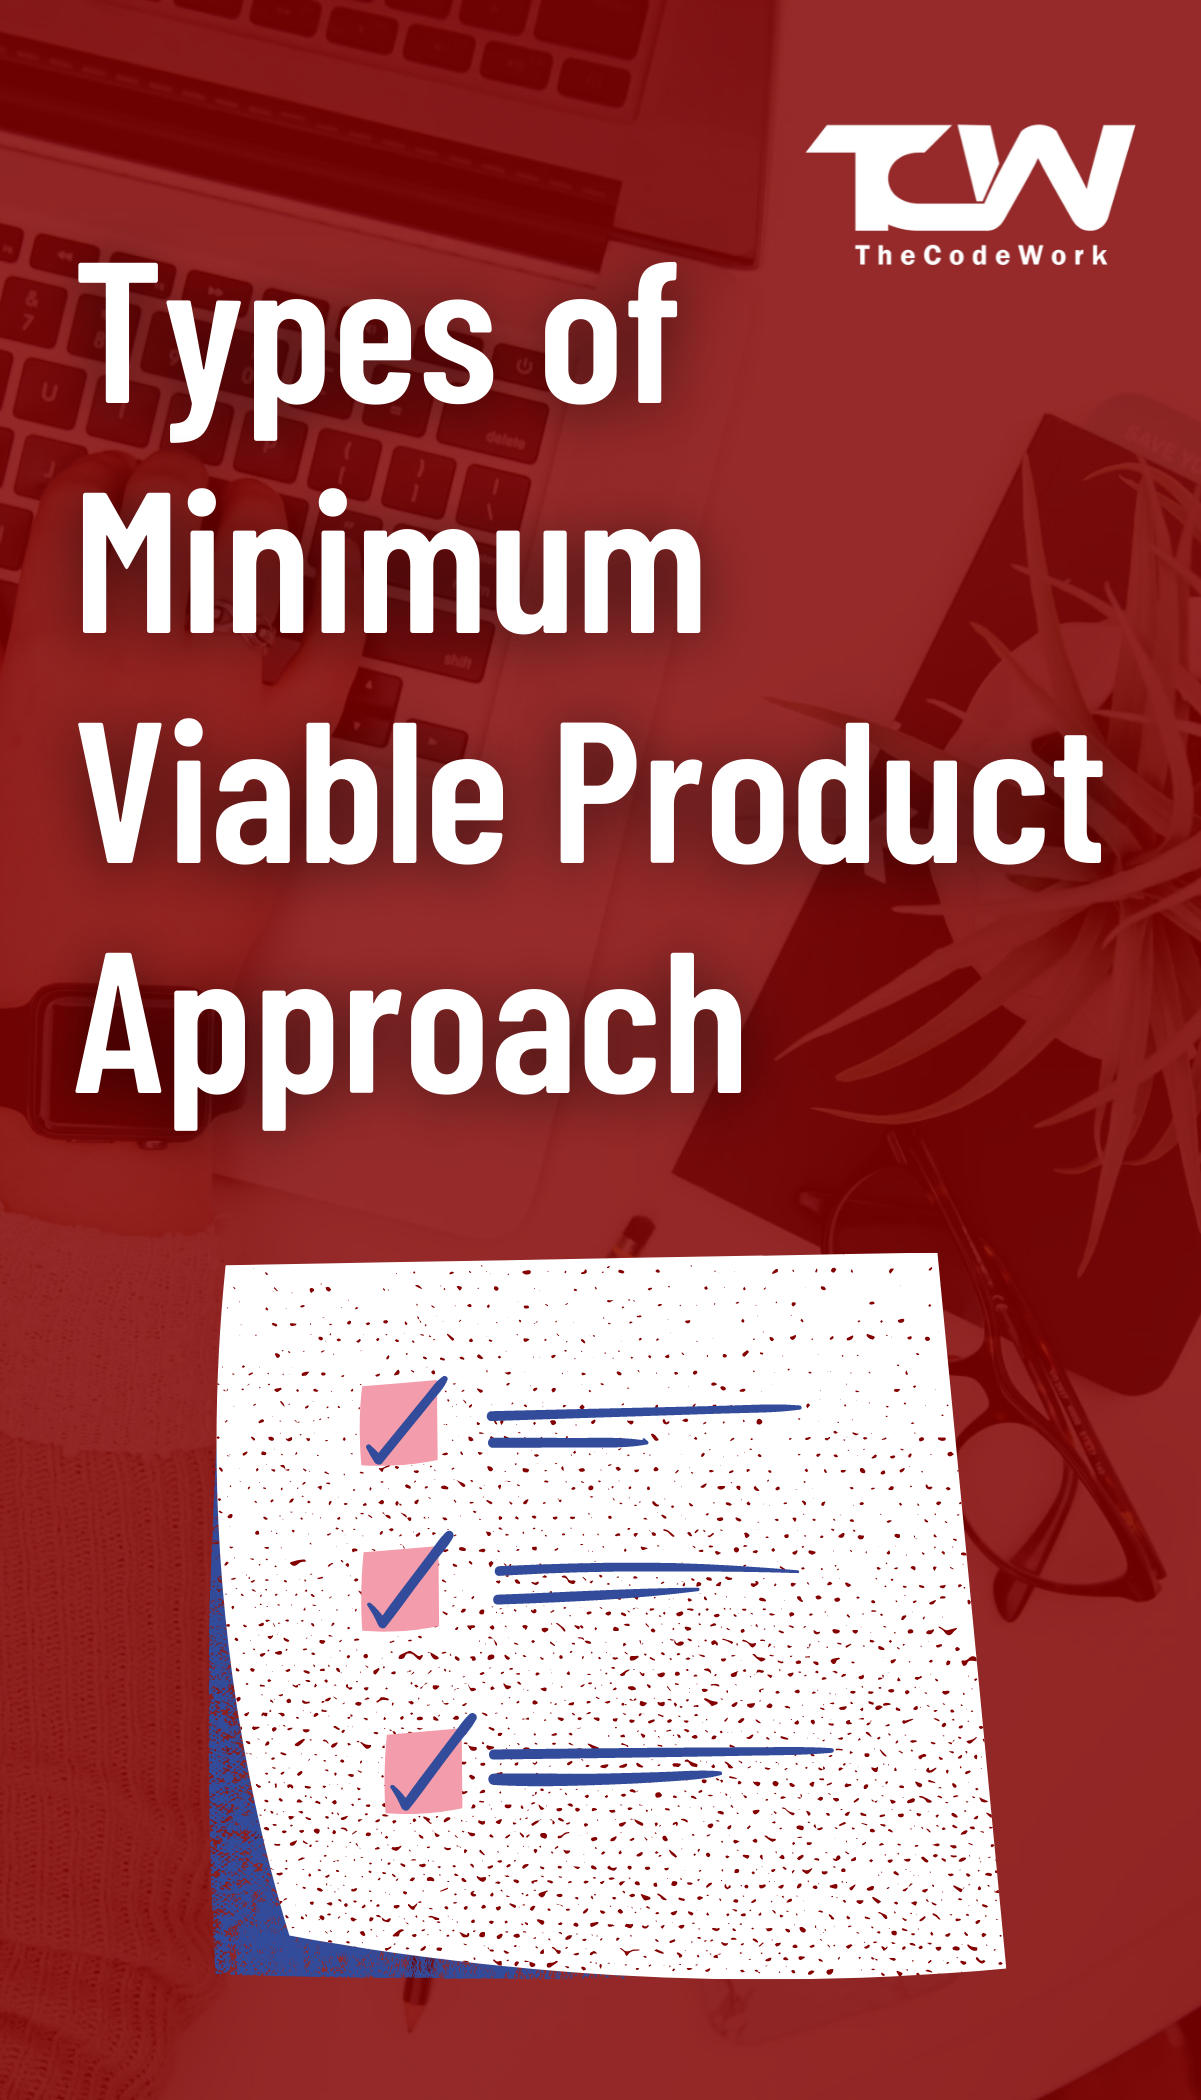 Types/examples of Minimum Viable Product Approach